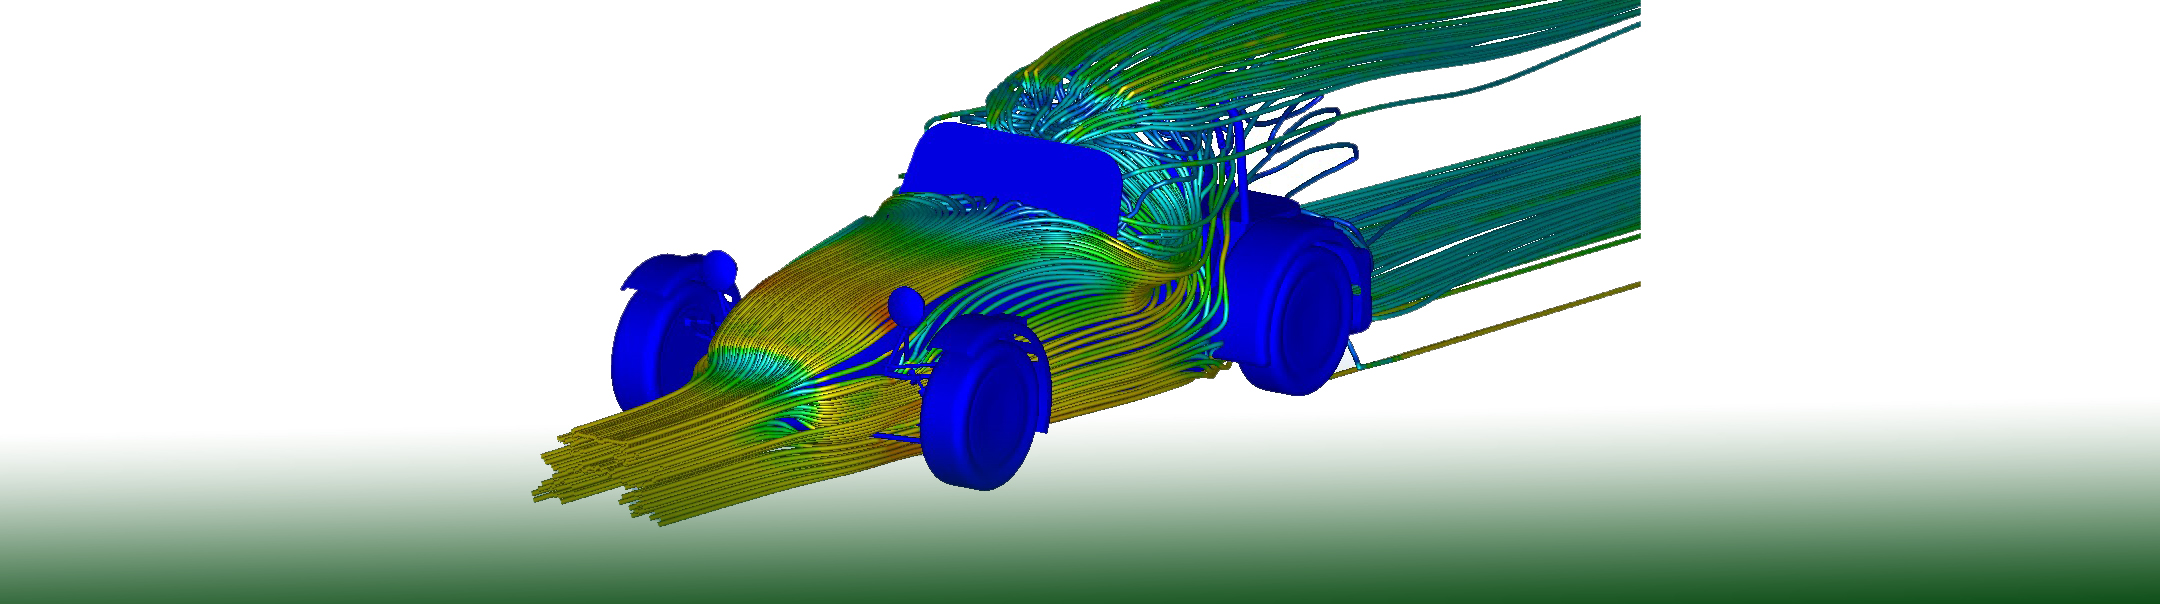 CFD Analysis